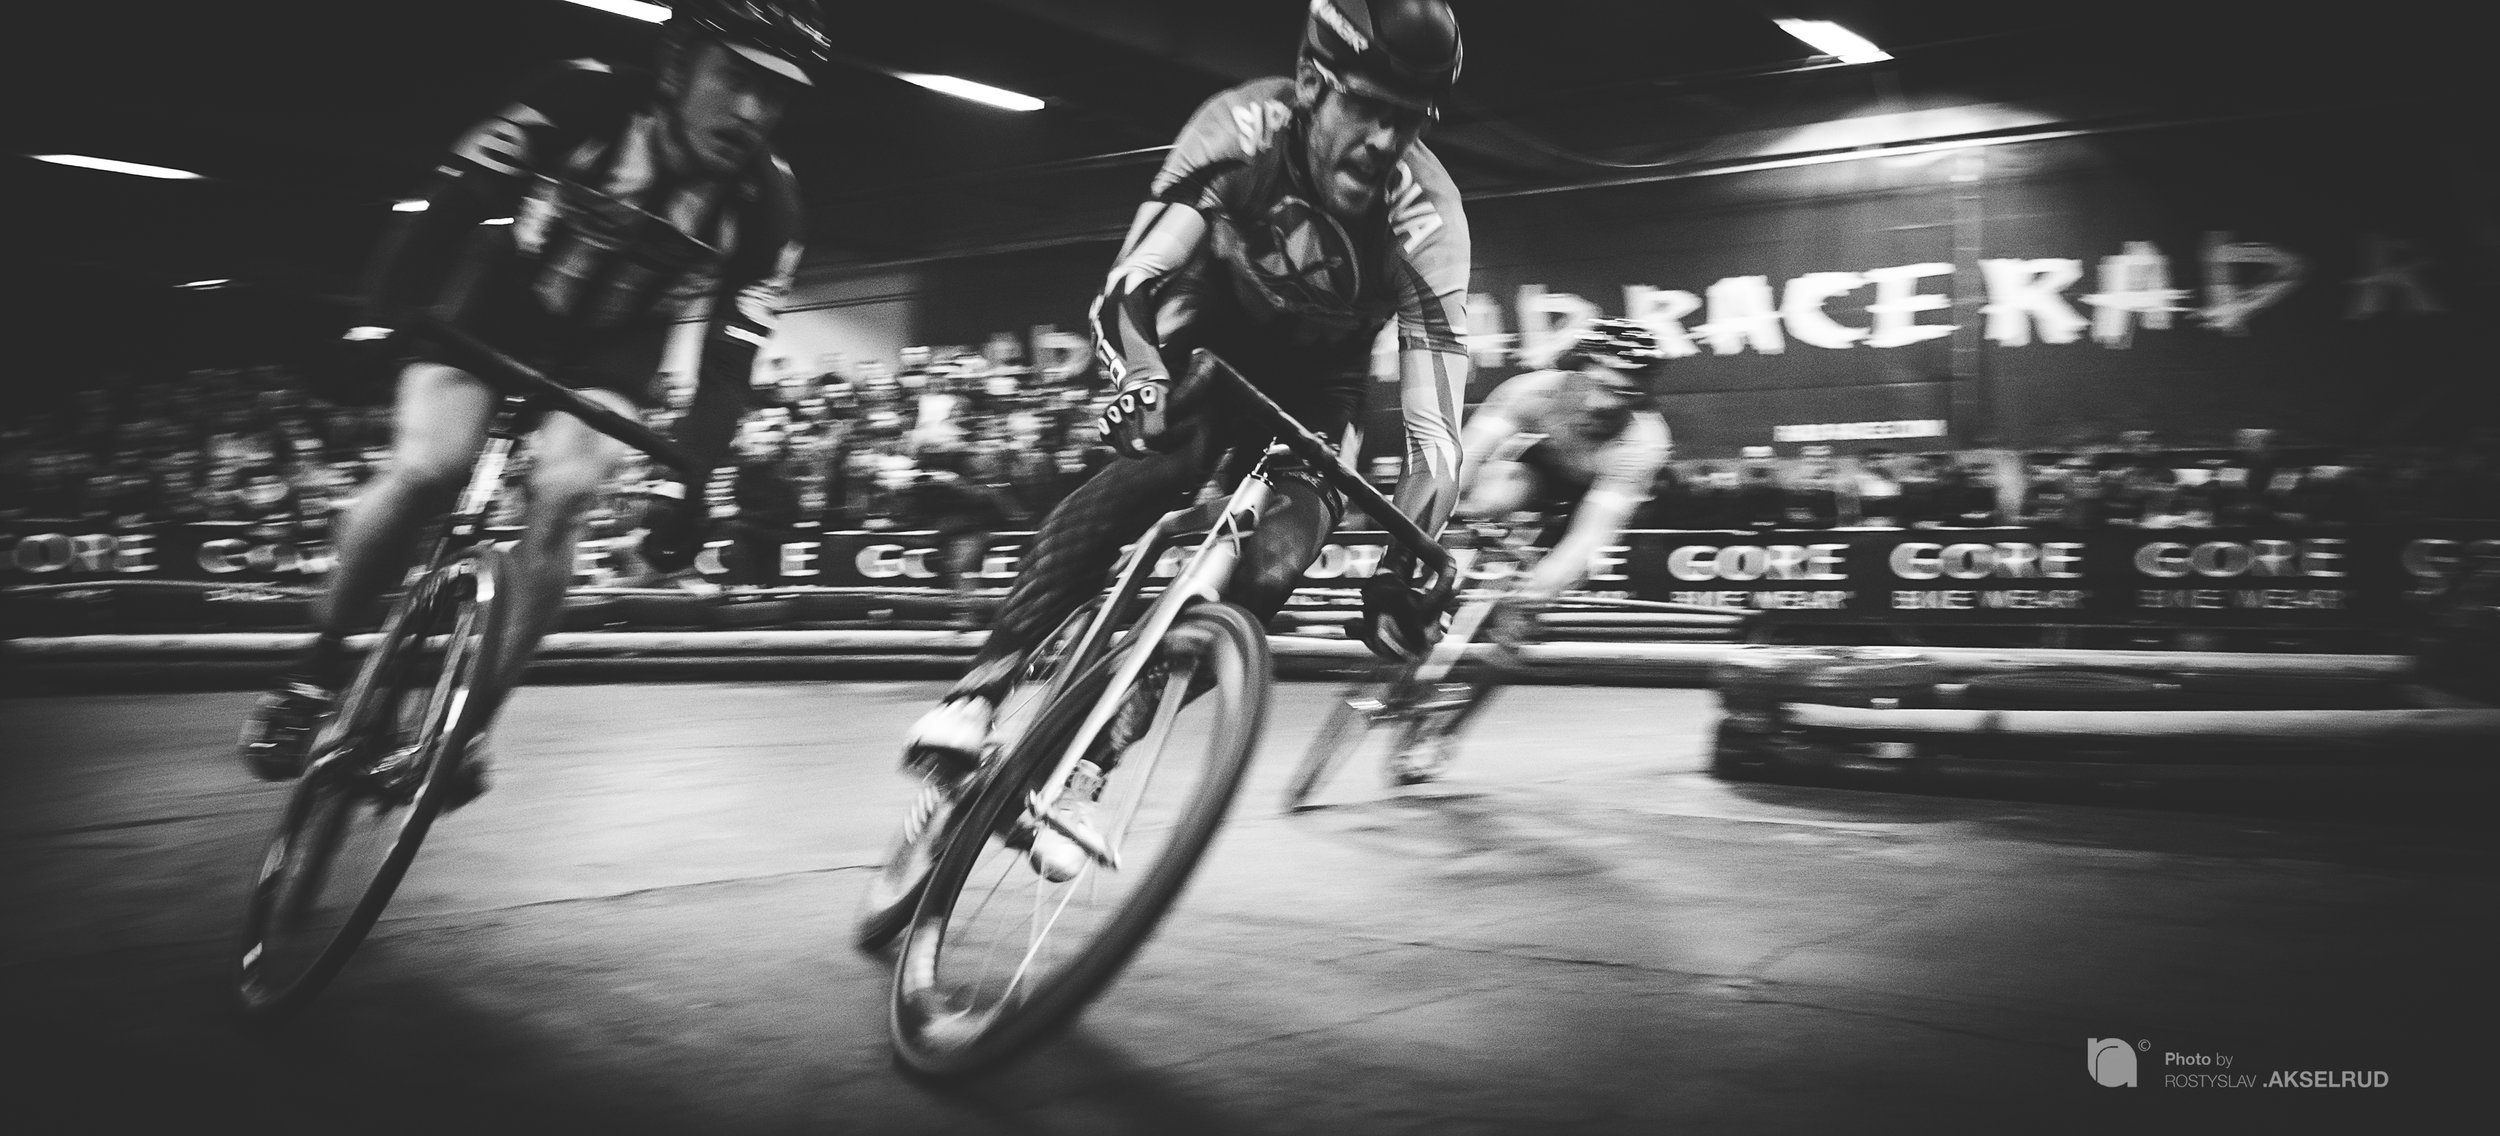 RAD RACE SERIES 2017 - The first of 4 events - RAD RACE LAST MAN STANDING, BERLIN - BY Rostislav Akselrud